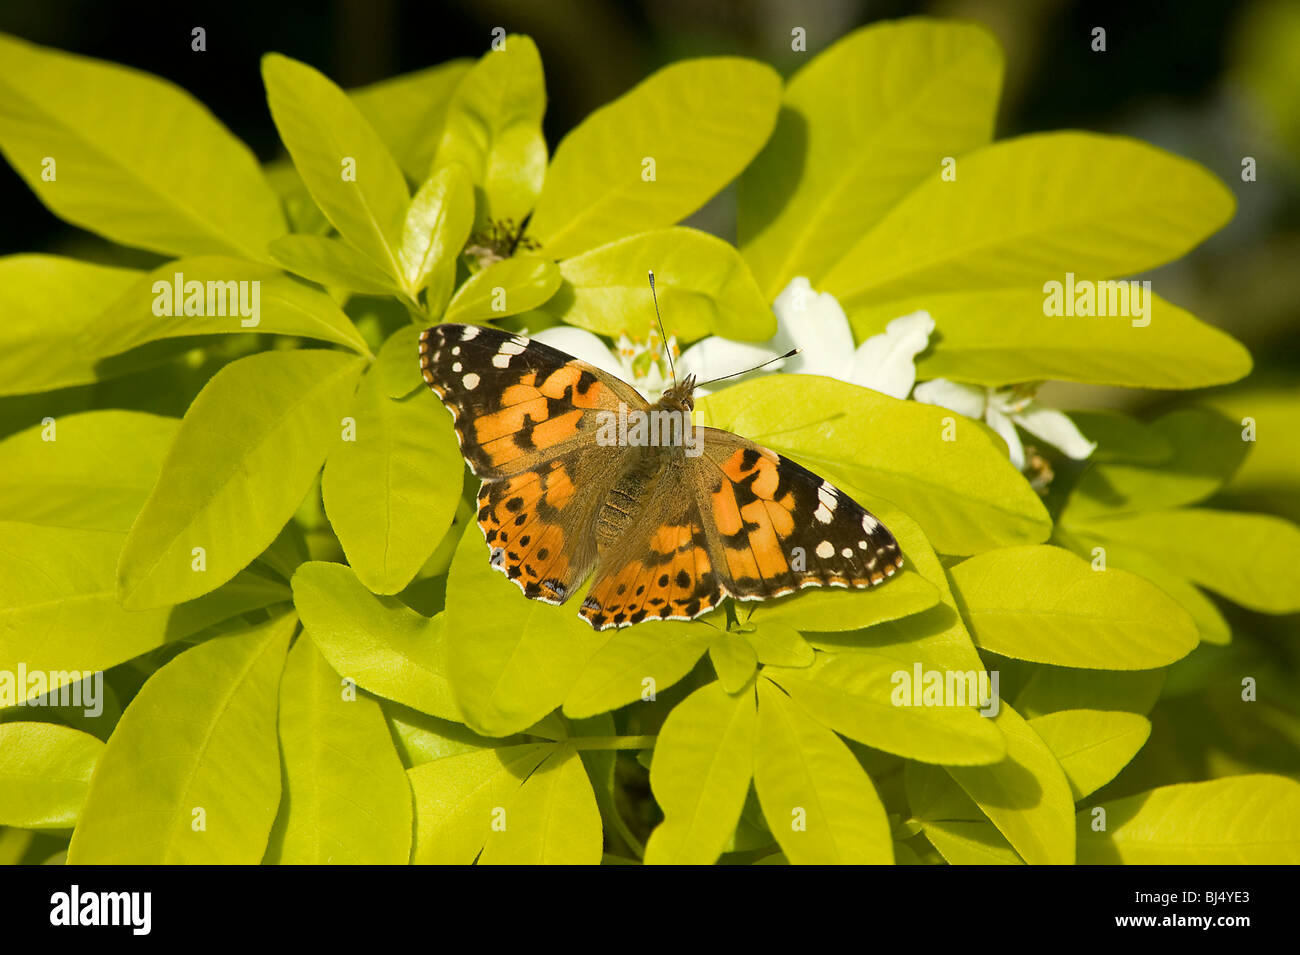 Painted lady basking on Mexican orange blossom, Choisya ternata 'Sundance' with golden leaves in May - Stock Image